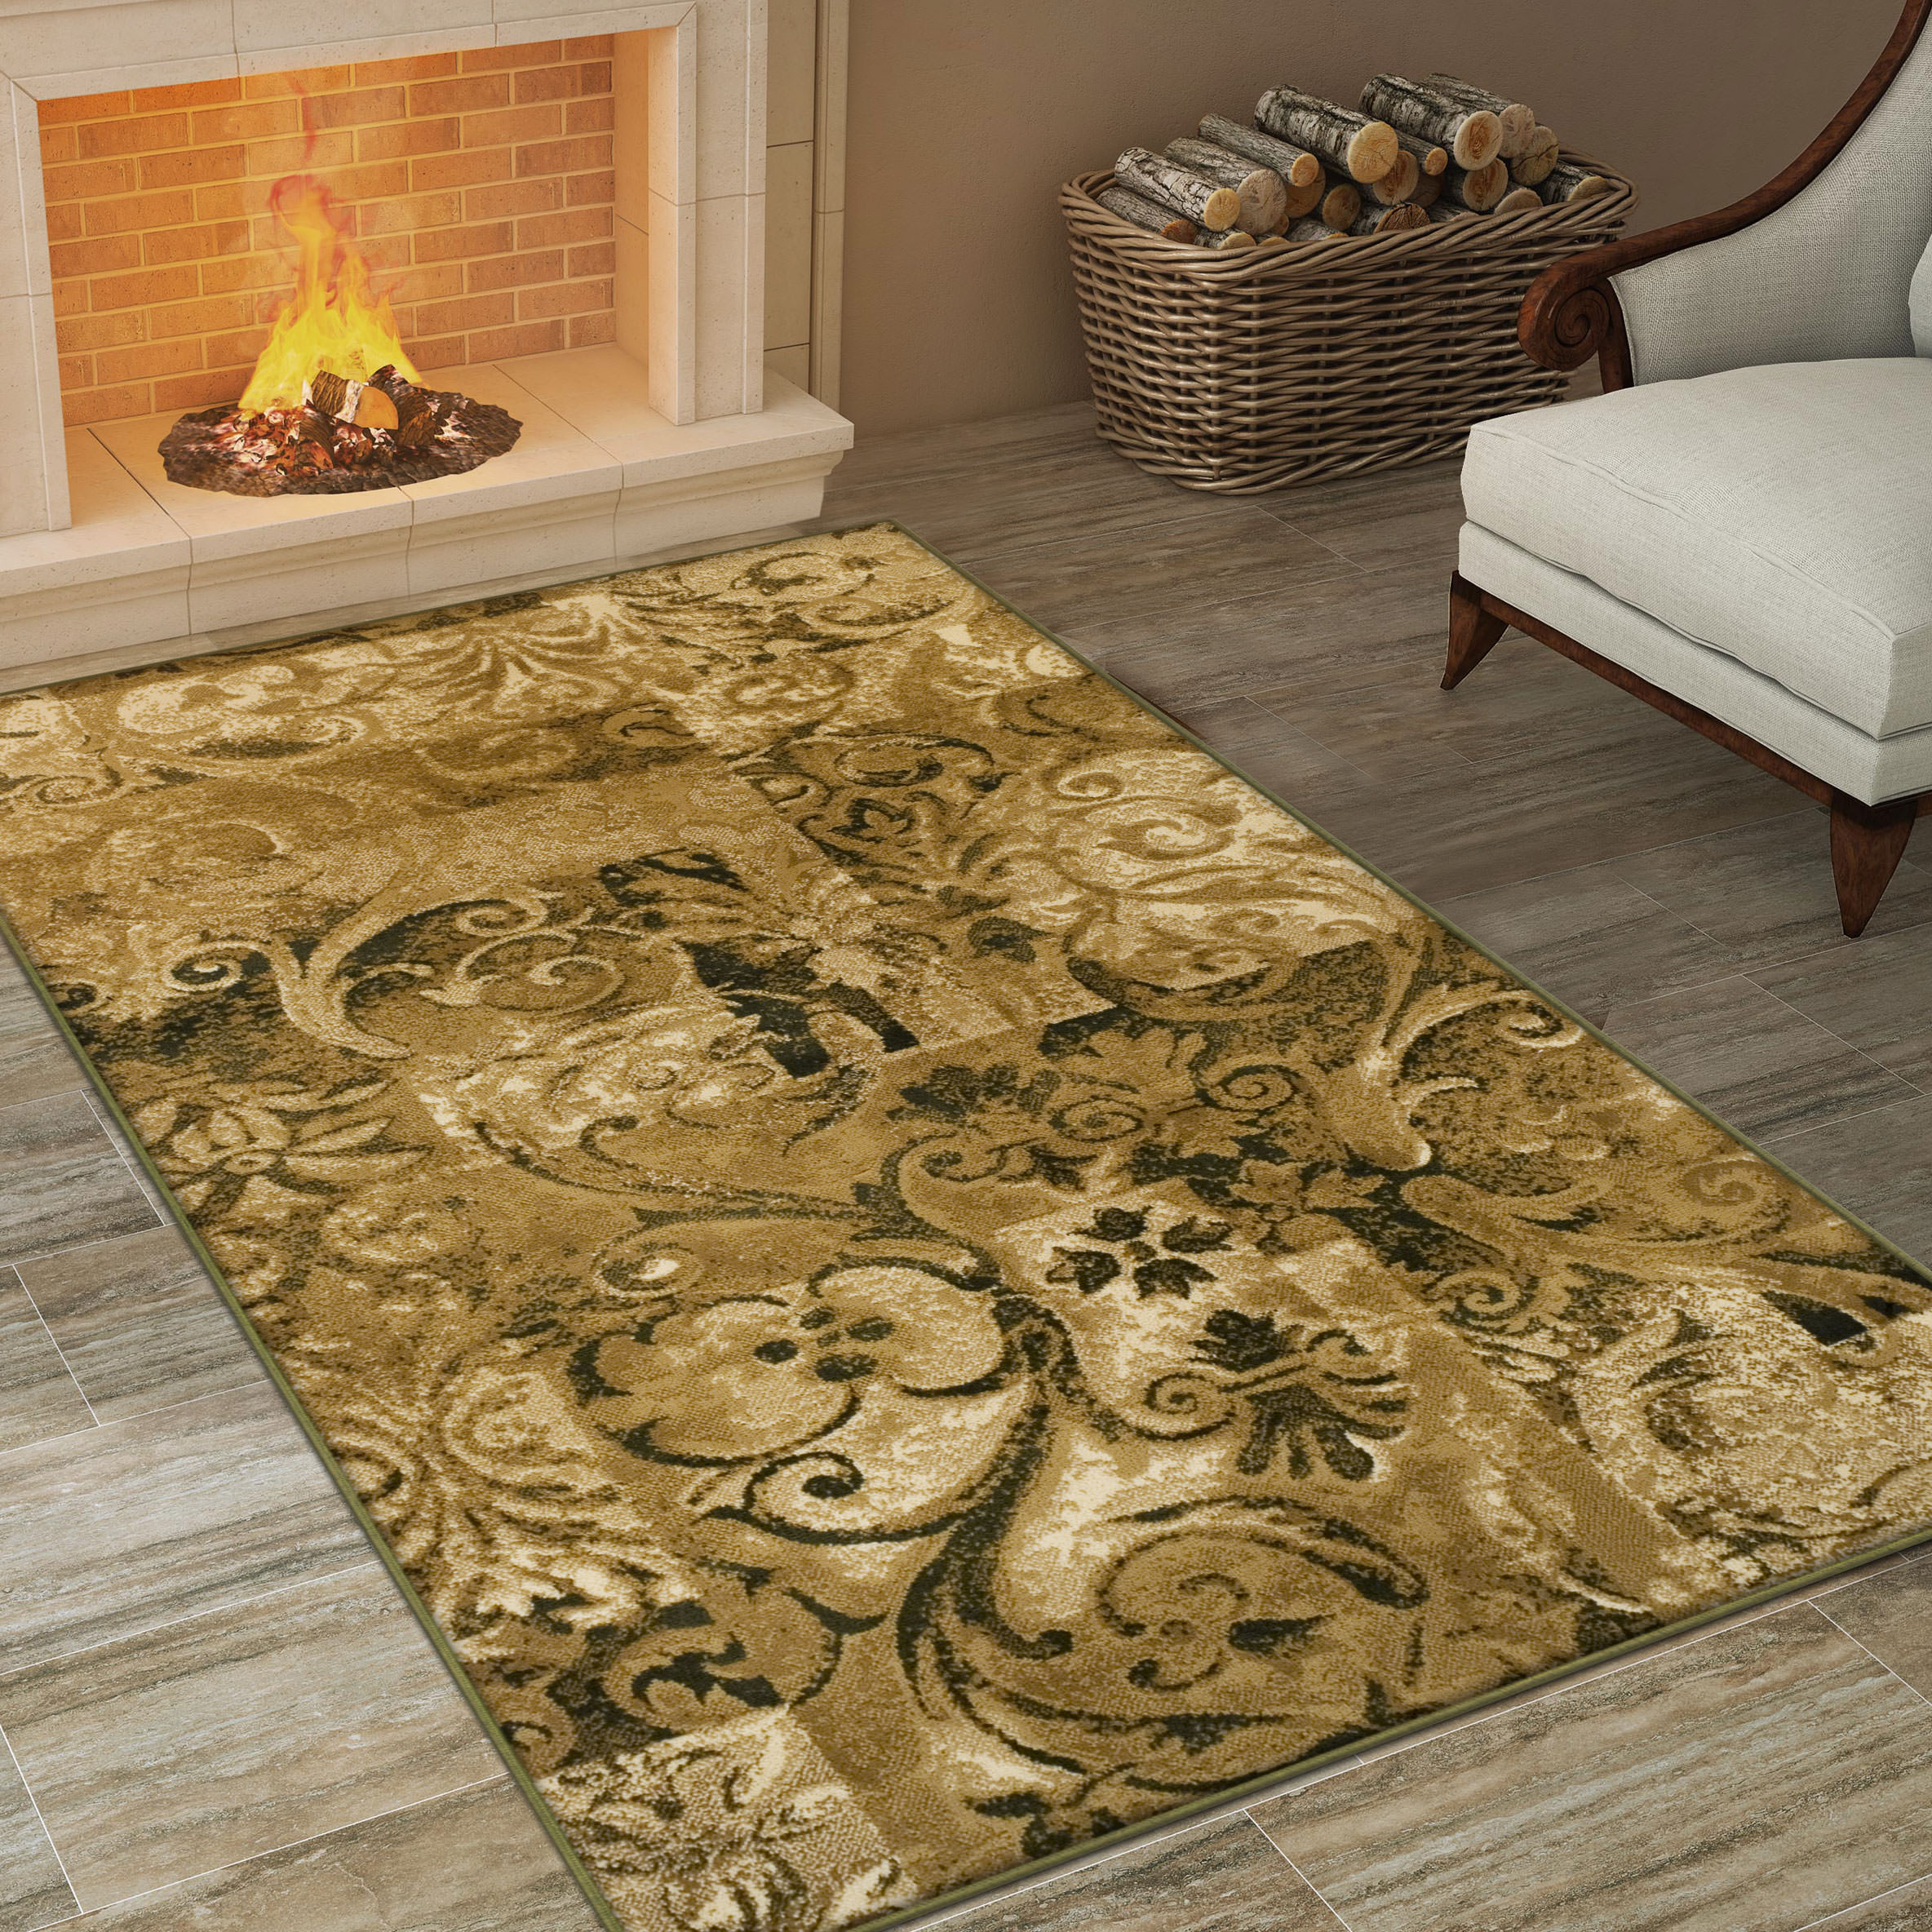 Superior Elegant Scrolling Patchwork Design, 10mm Pile with Jute Backing, Affordable Contemporary Modern Scroll Collection Area Rug, Beige